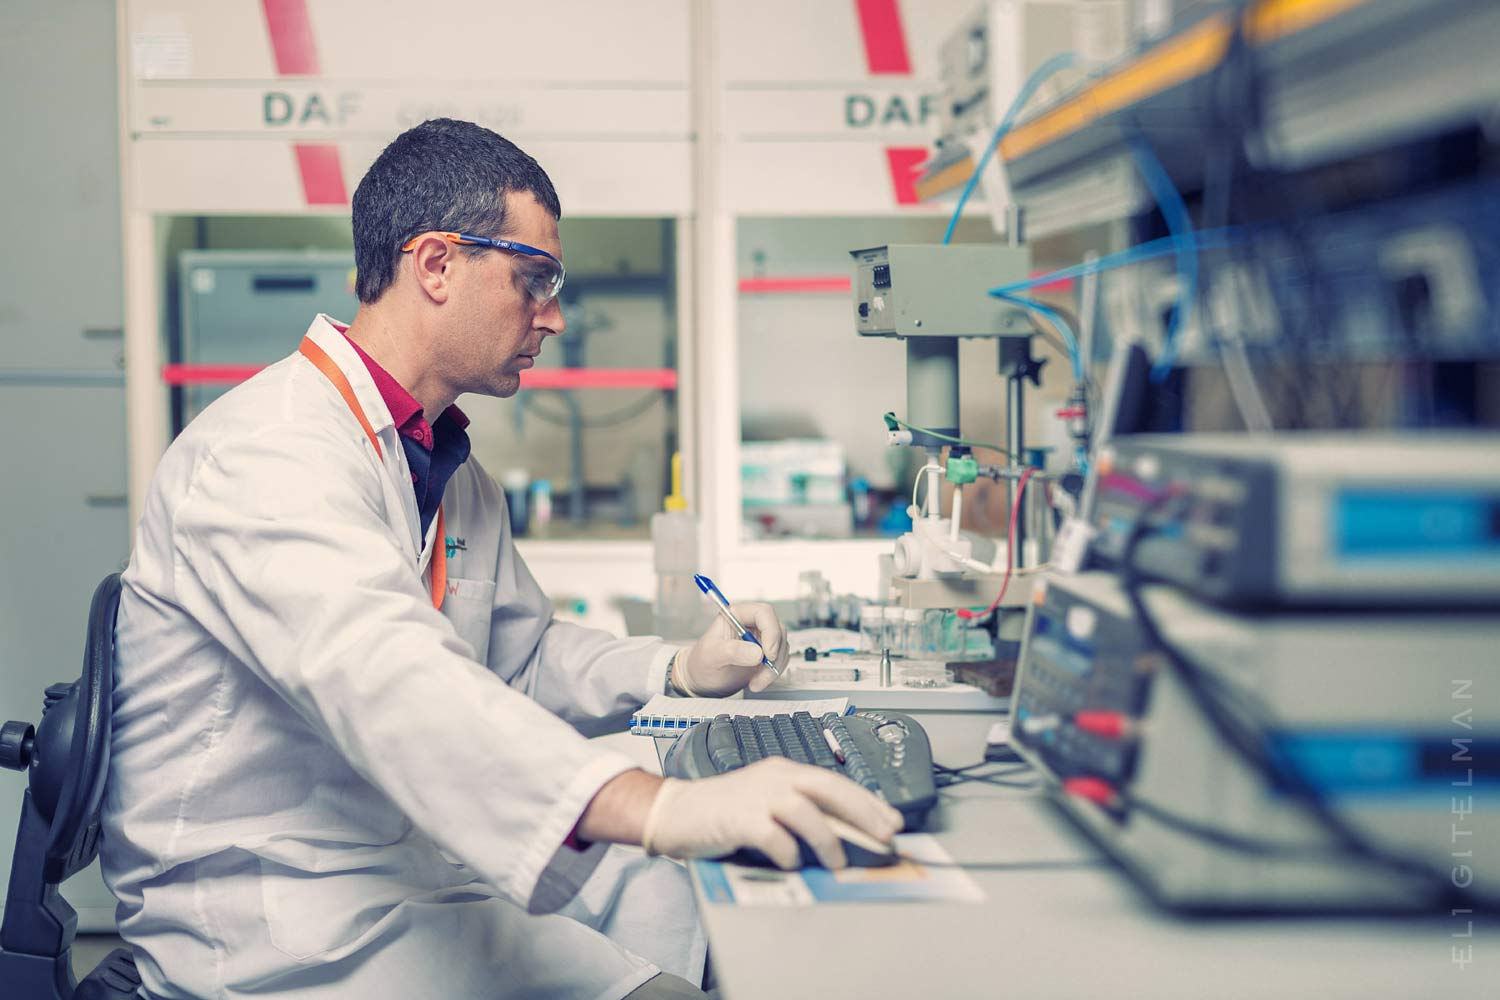 A man working in a lab